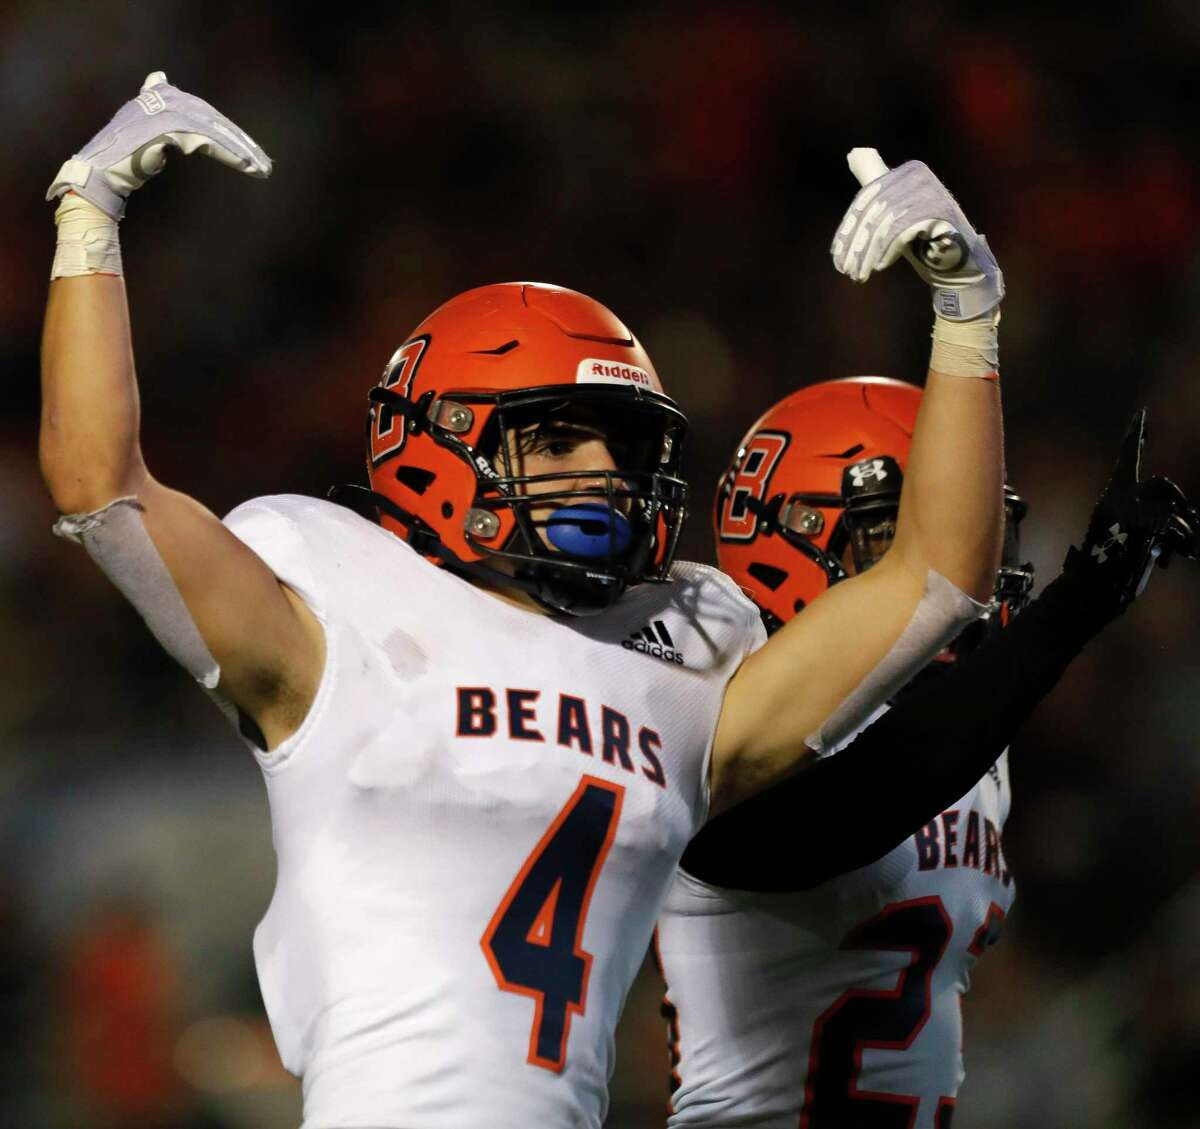 Bridgeland defensive back Graham Gillespie (4) reacts after breaking up a pass on fourth down during the second quarter of a non-district high school football game at Woodforest Bank Stadium, Friday, Sept. 10, 2021, in Shenandoah.